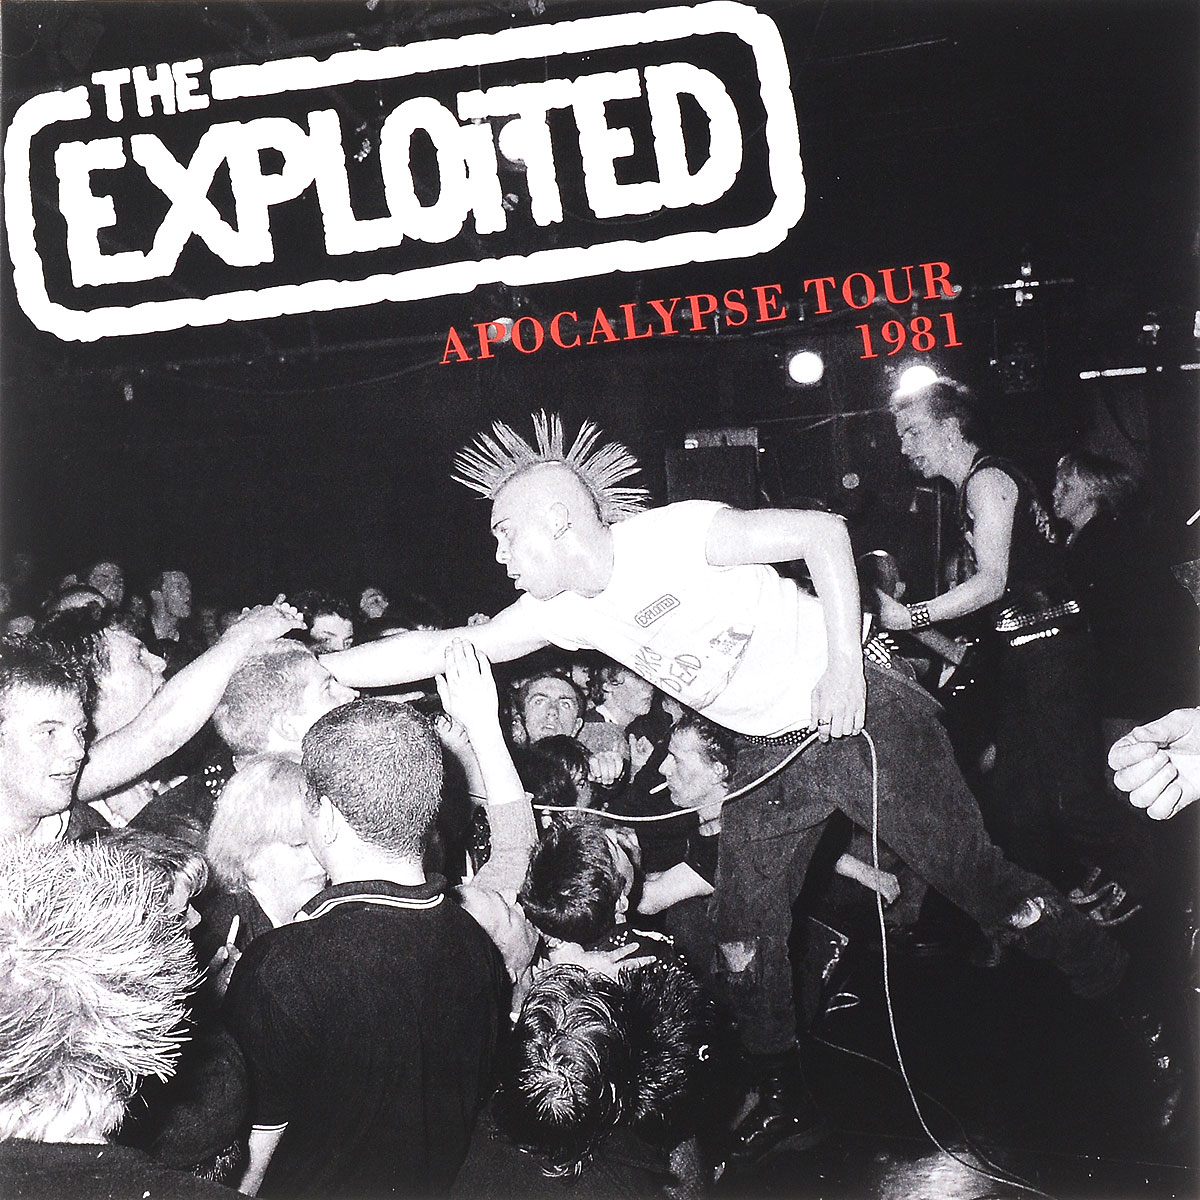 The Exploited The Exploited. Apocalypse Tour 1981. Limited Edition (LP) space deliverance limited edition glow in the dark vinyl lp